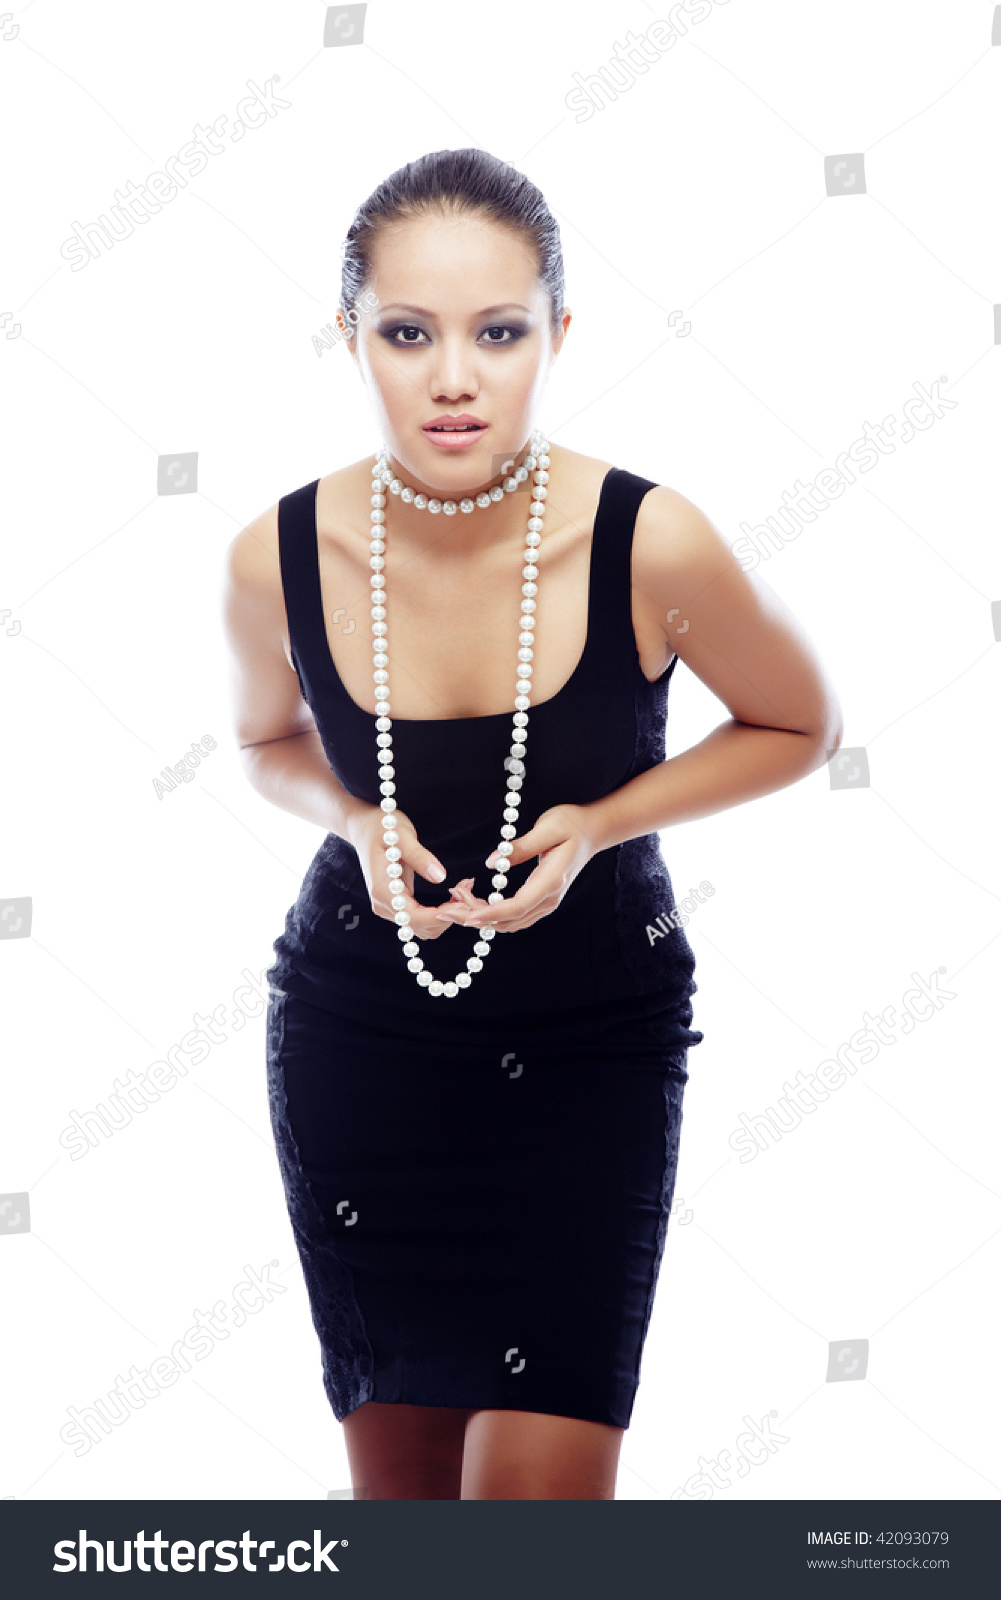 4c597a76950 Elegant Asian lady in the black dress with pearl necklace on a white  background